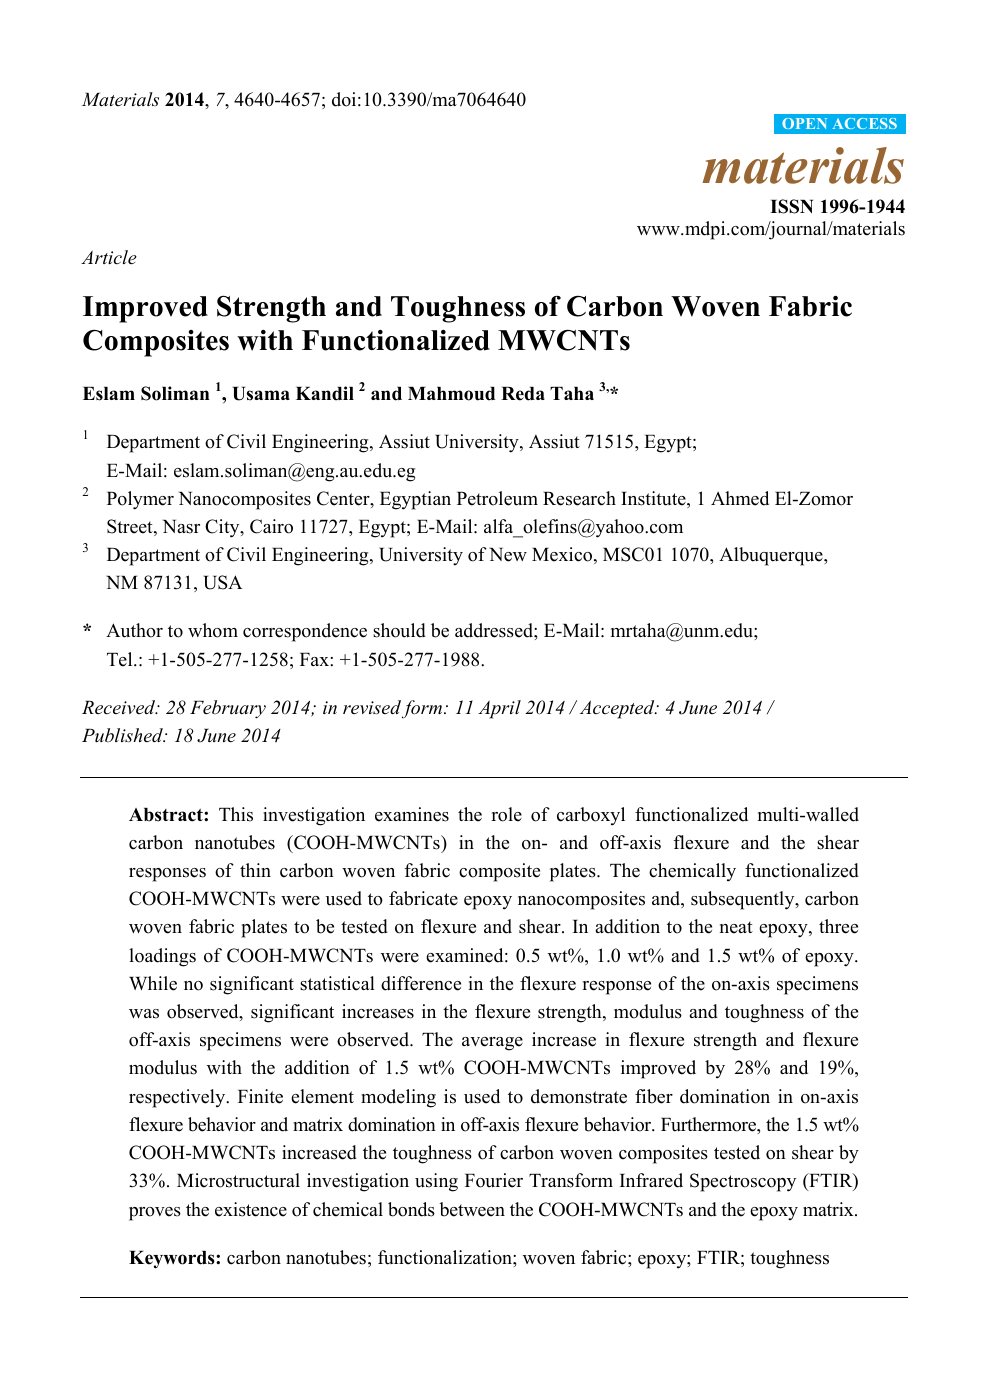 Improved Strength and Toughness of Carbon Woven Fabric